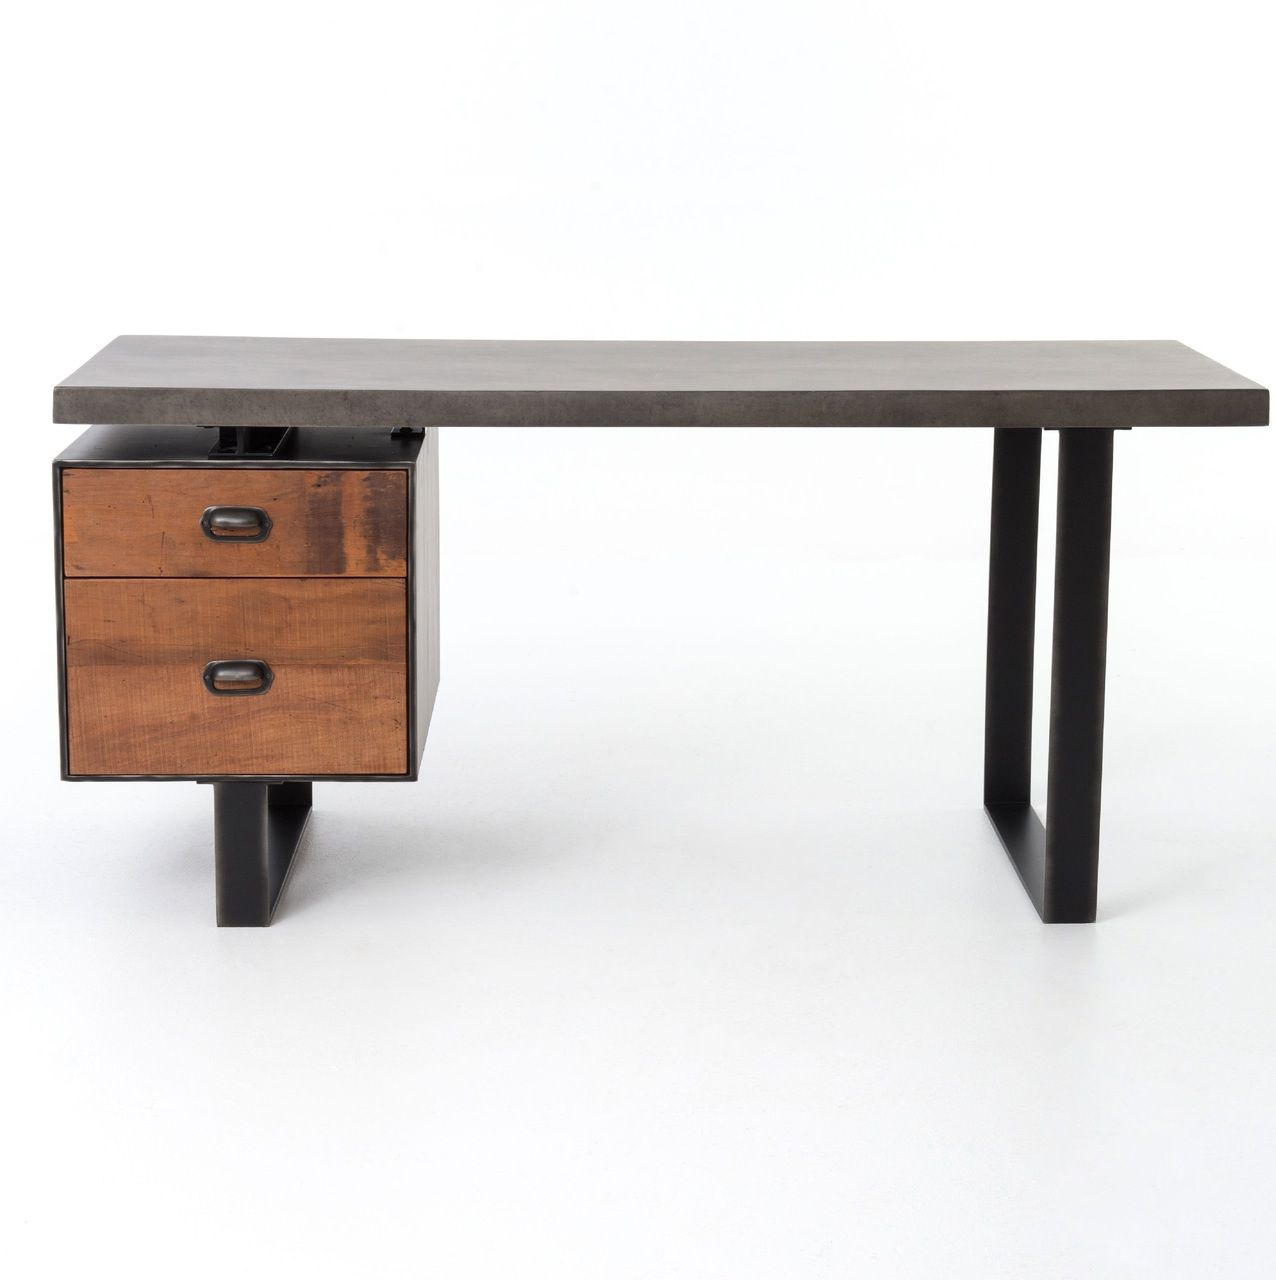 Clapton Concrete Wood Desk With File Drawer